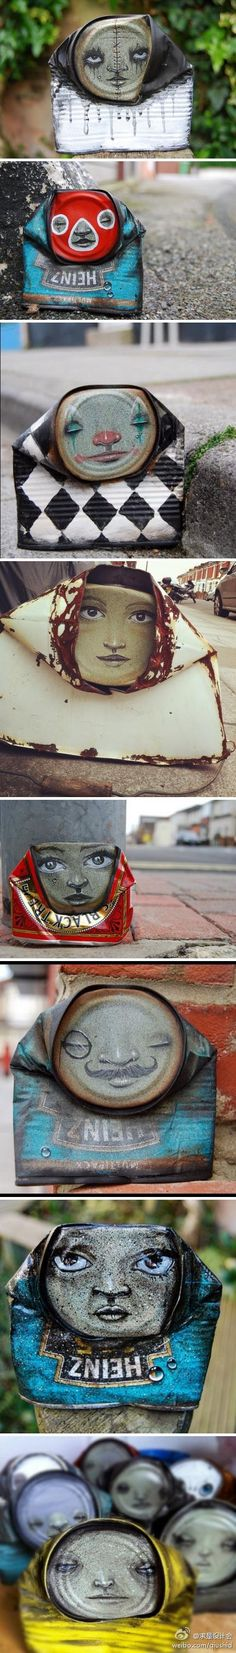 My Dog Sighs #streetart